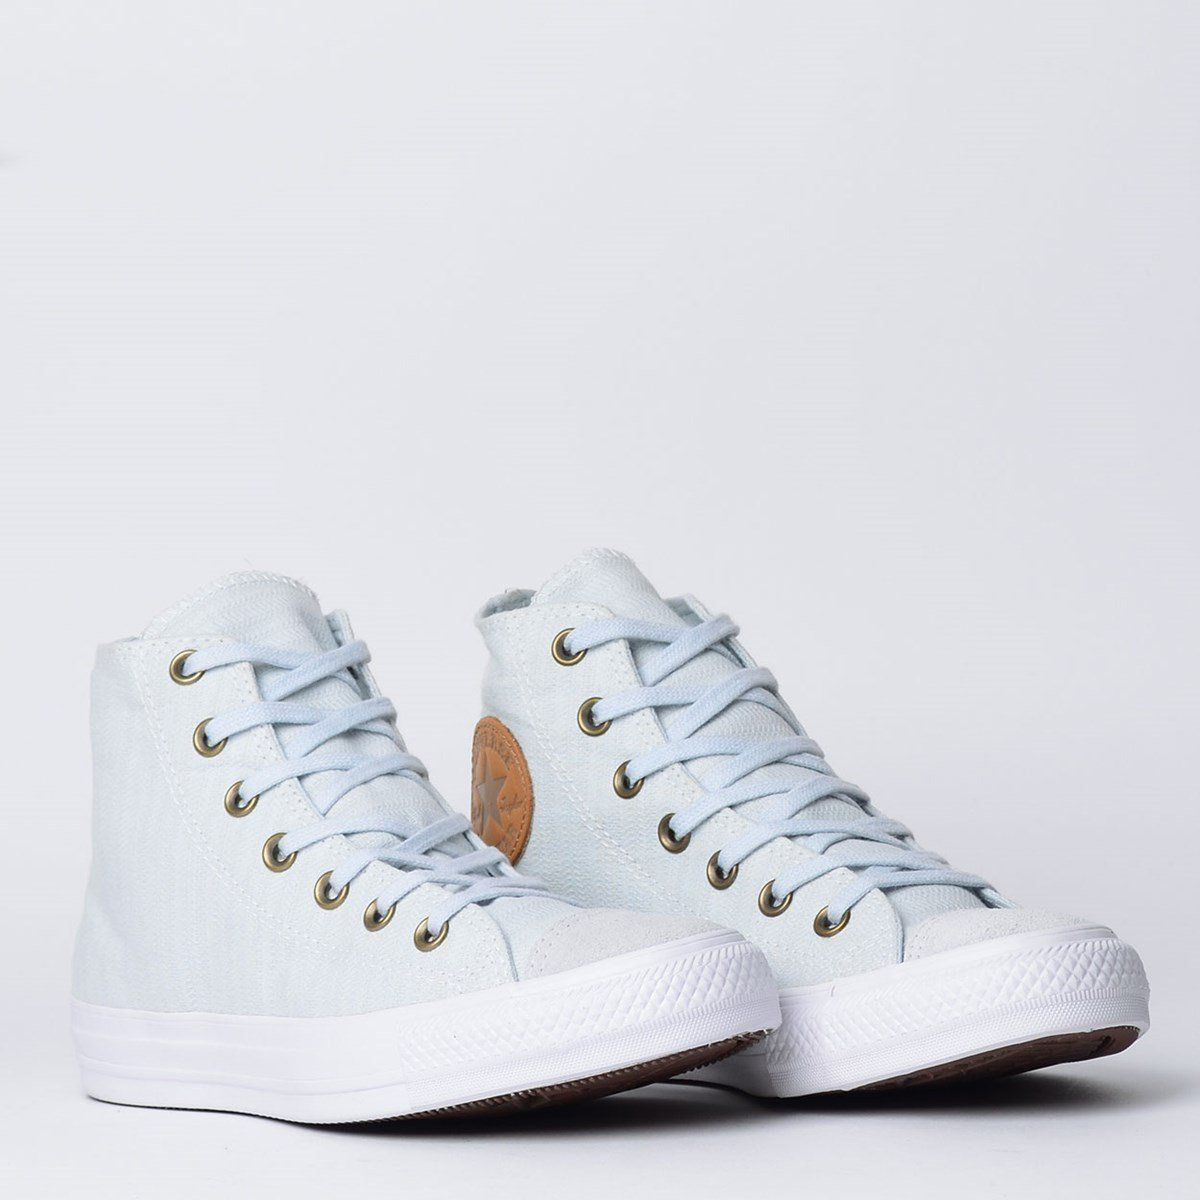 21bd3f3709 Tênis Converse Chuck Taylor All Star Hi Cinza Puro Caramelo - Overcome  Clothing